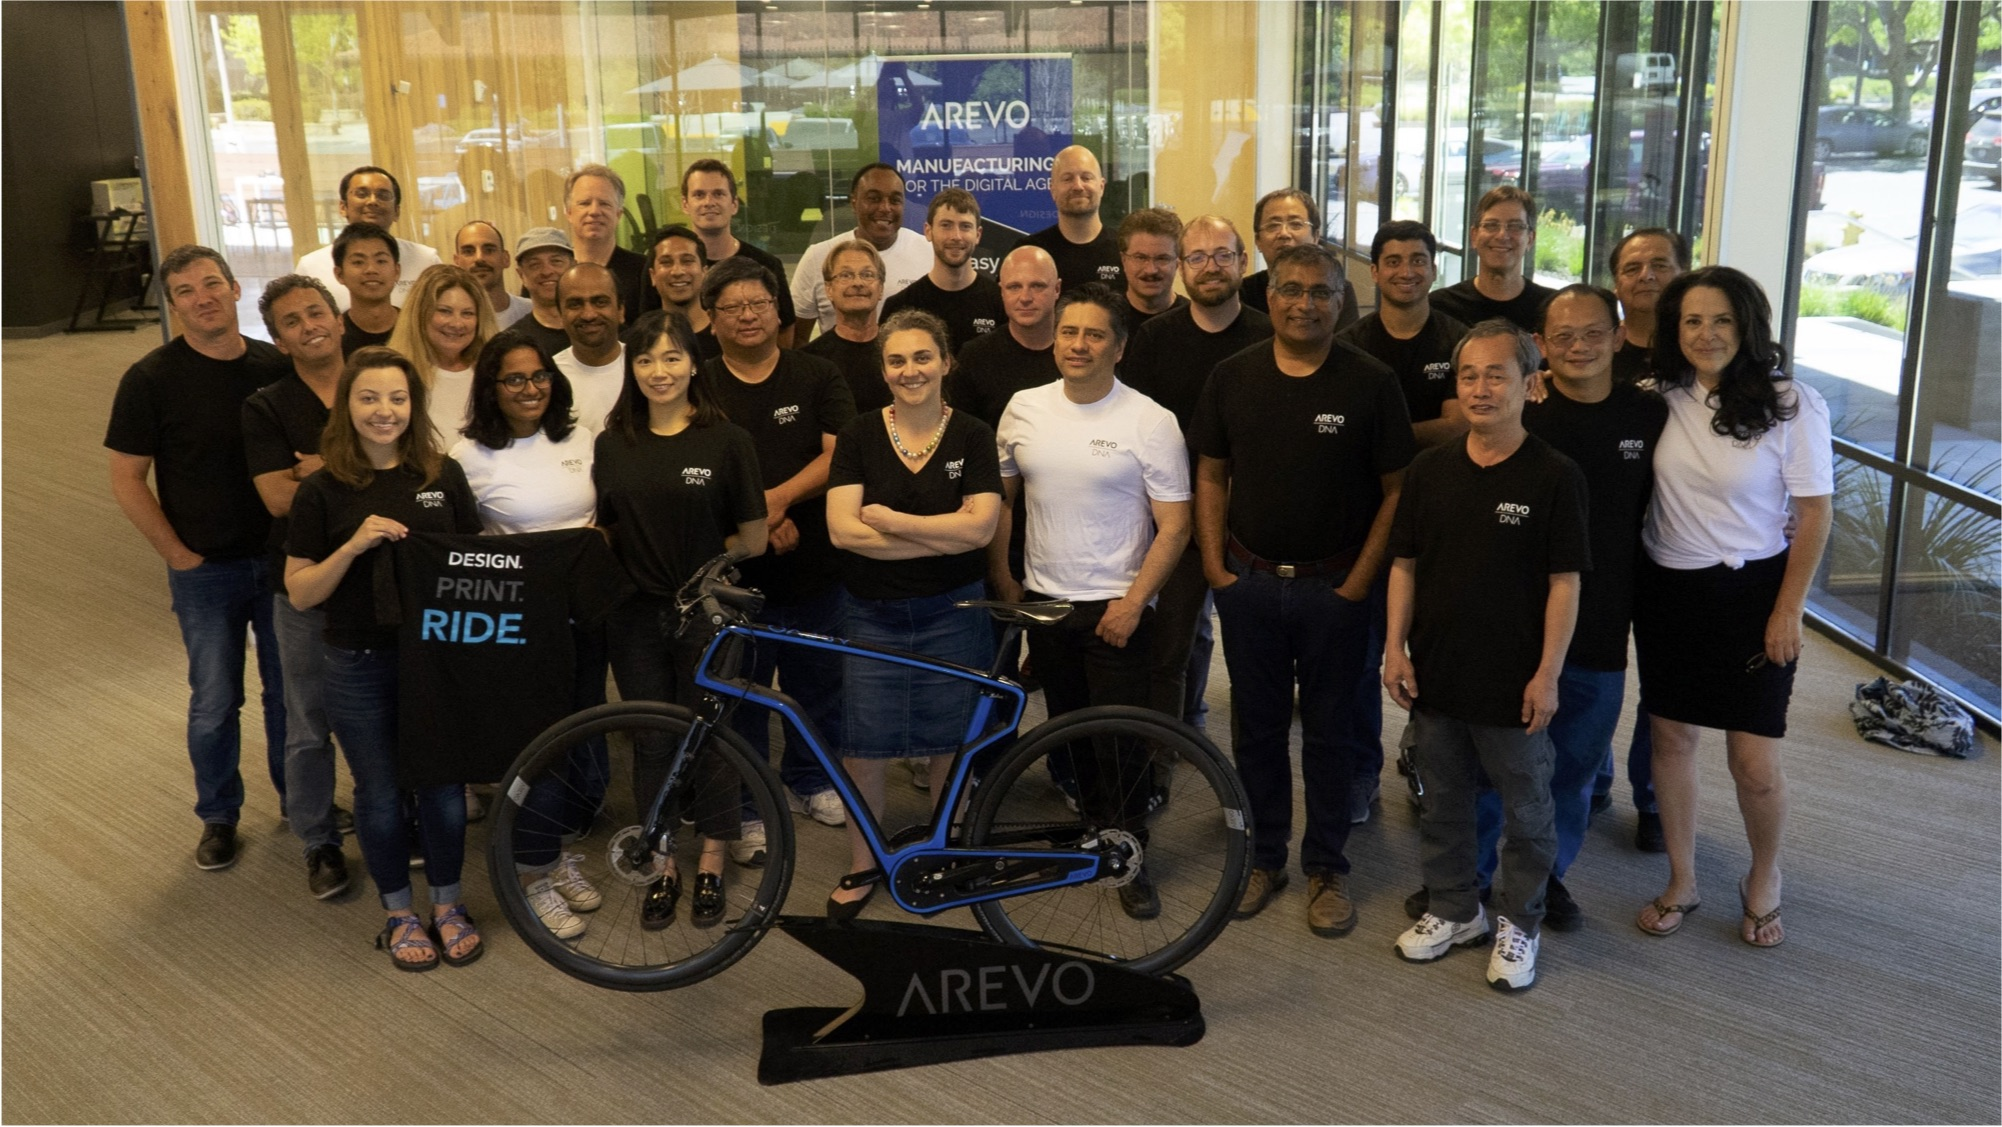 Arevo scientists and engineers